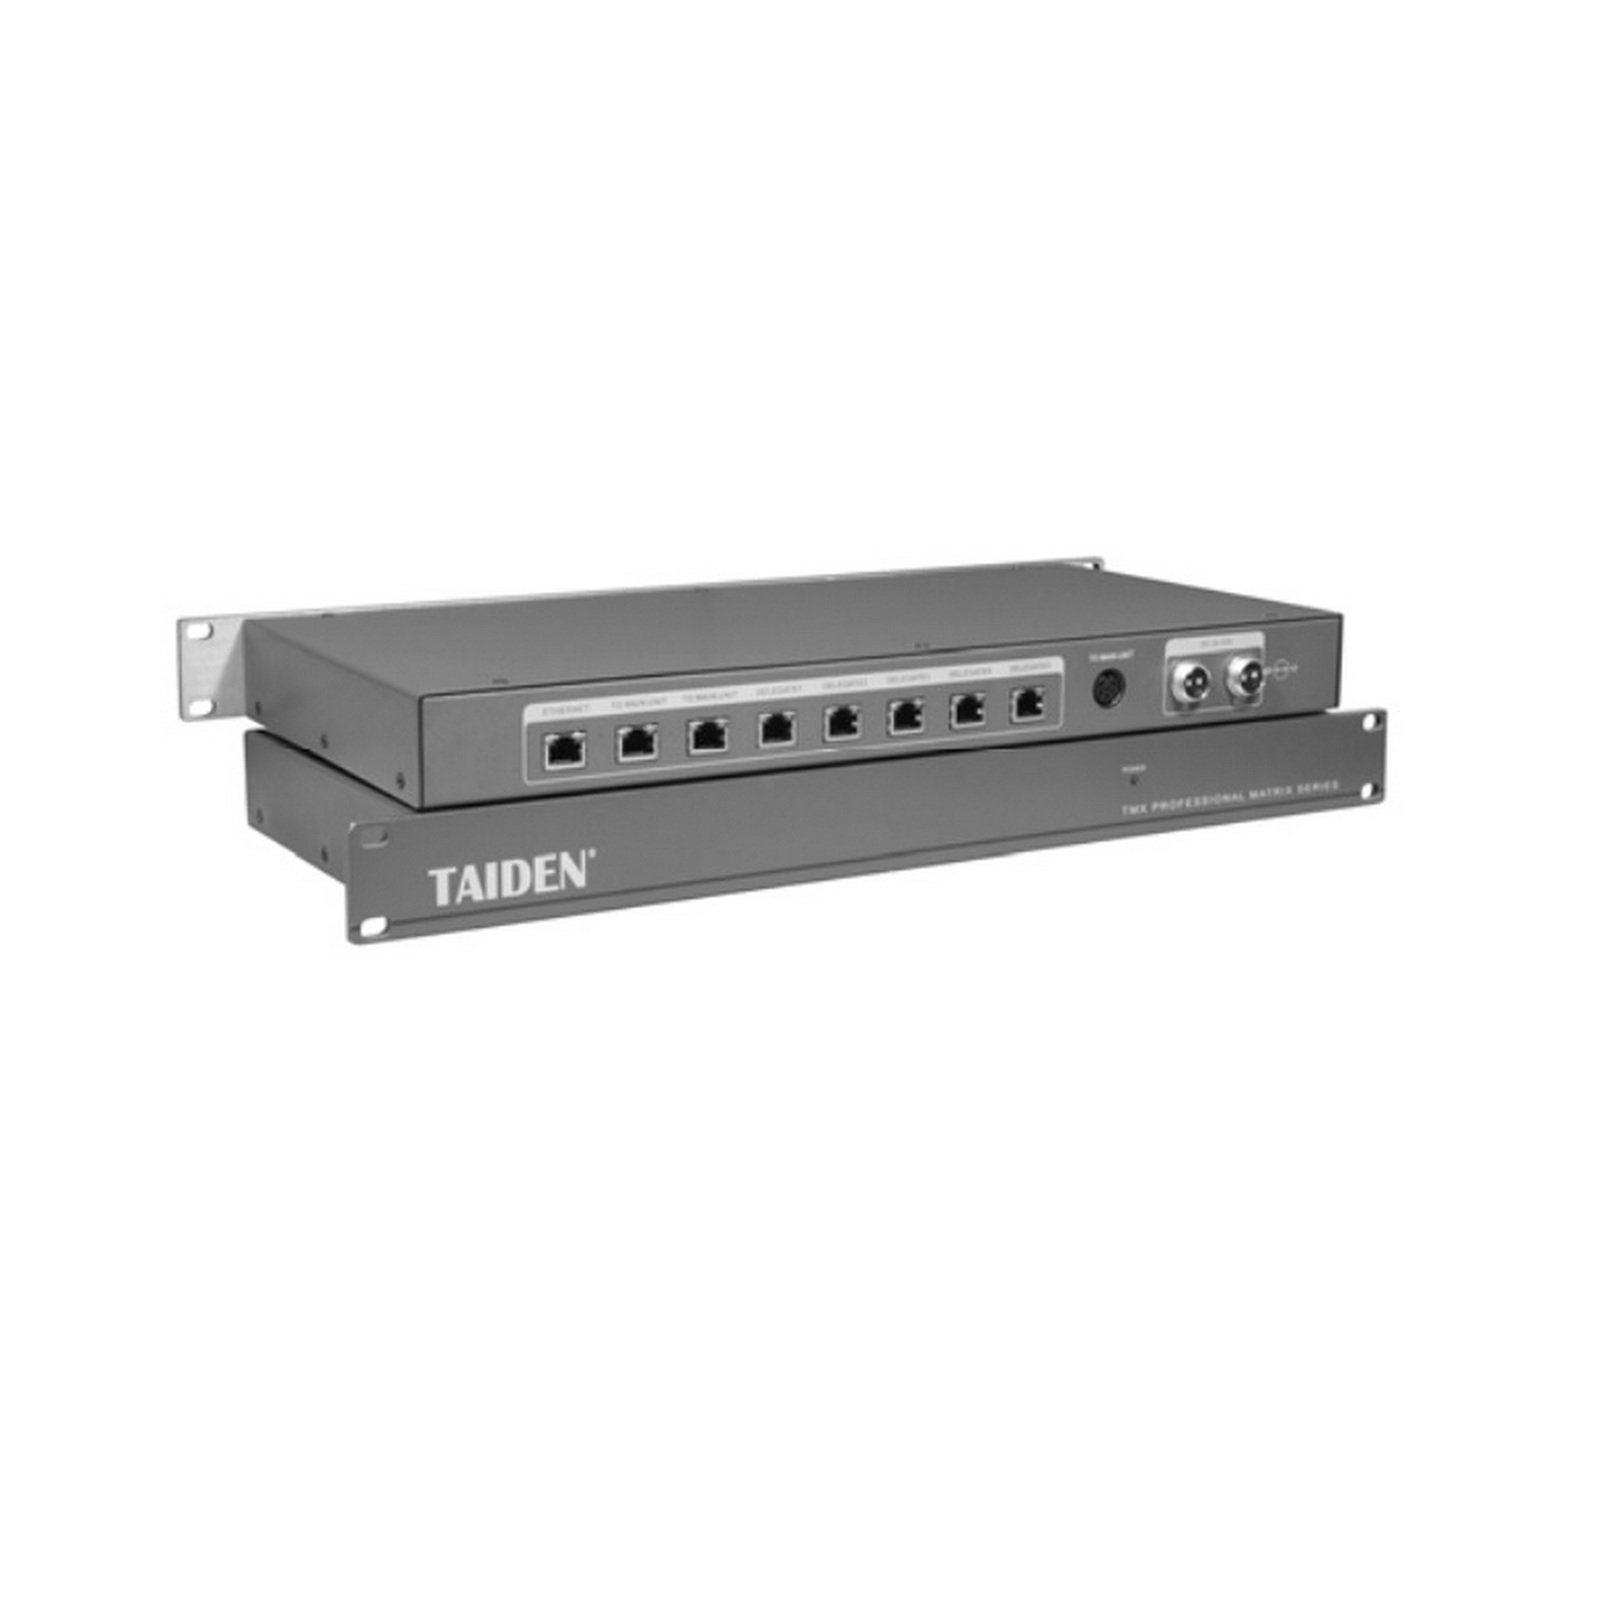 Media Vision HCS-8300KMX | Congress Gigabit Network Switcher by Media Vision